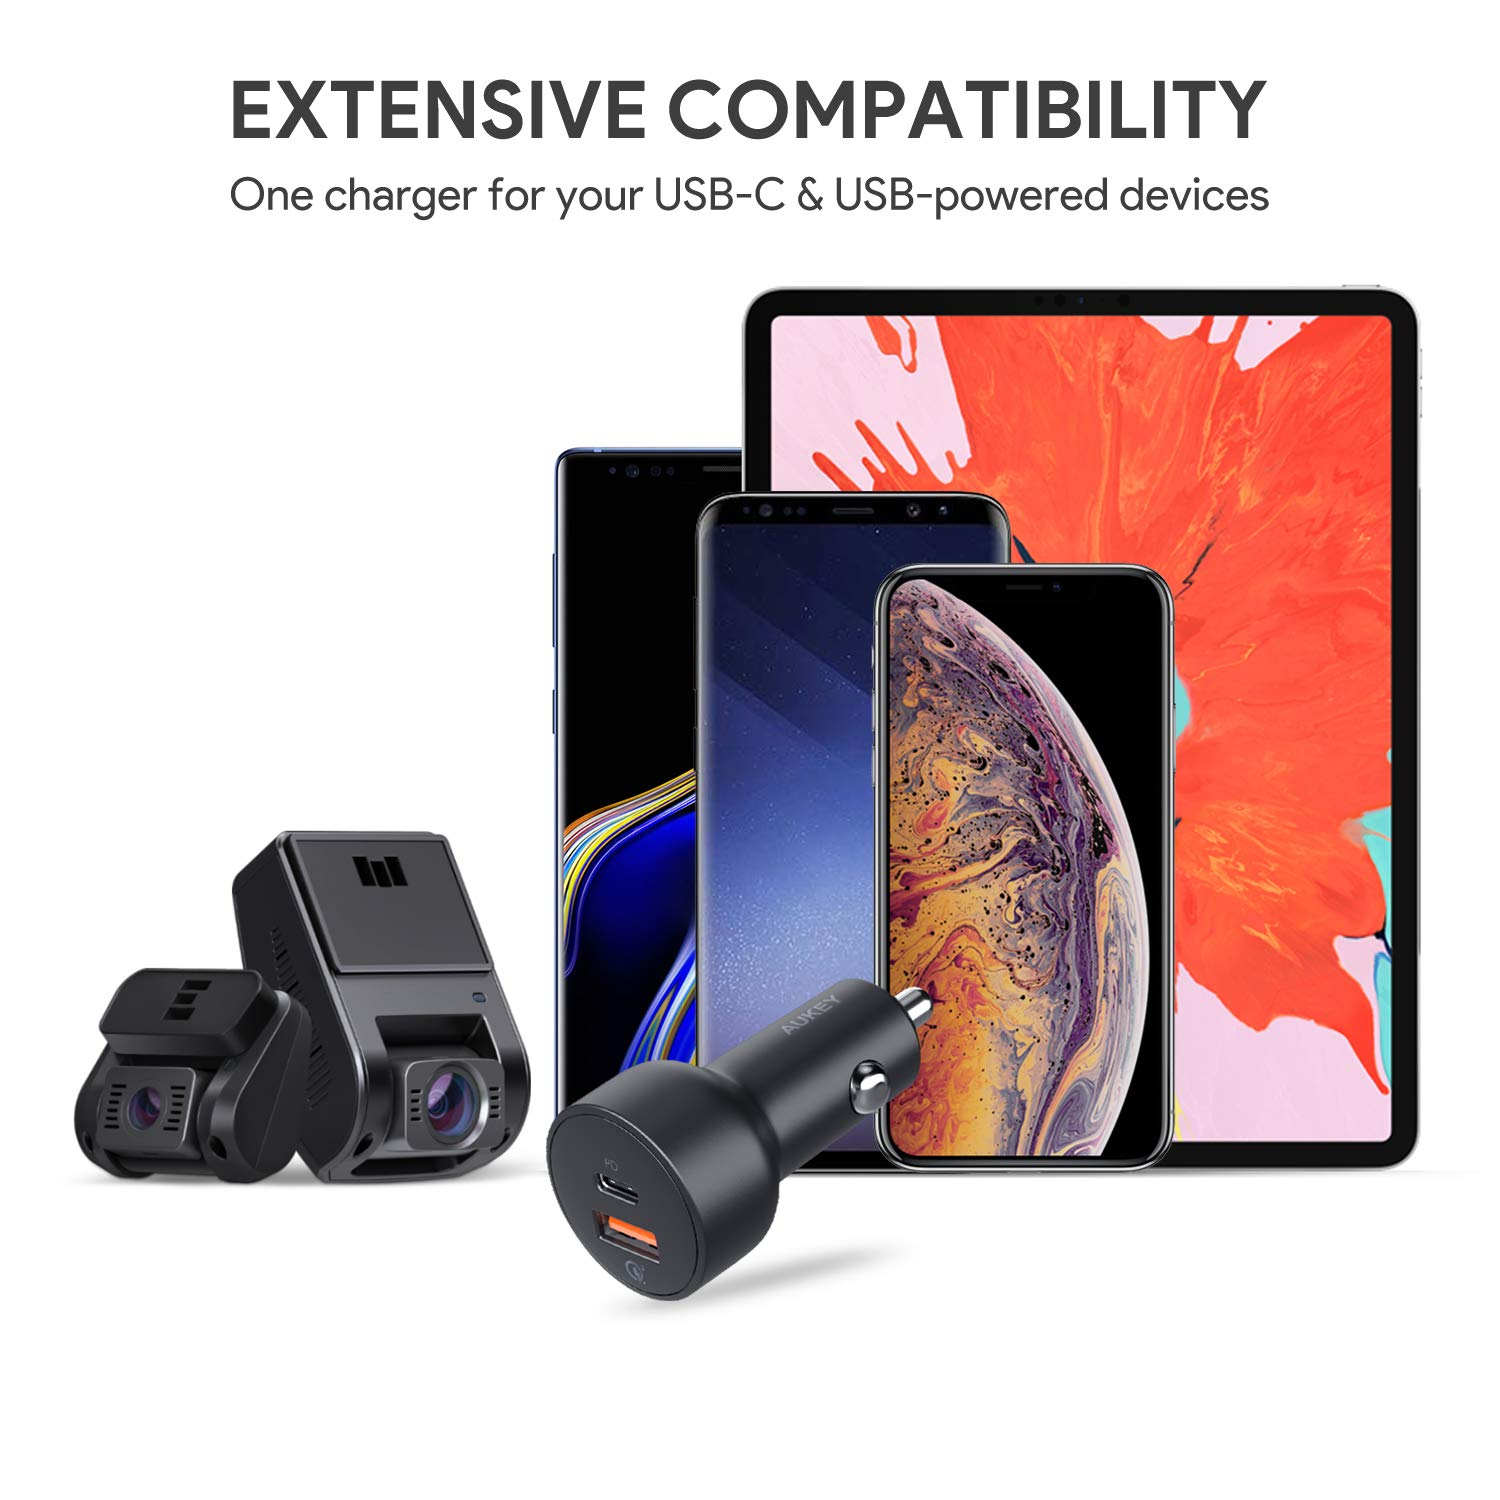 AUKEY 36W USB C PD Car Charger, 18W Power Delivery & Quick Charge 3 0 Ports  for Google Pixel 2 XL, iPhone Xs/Max/X, Samsung Galaxy S9 and More